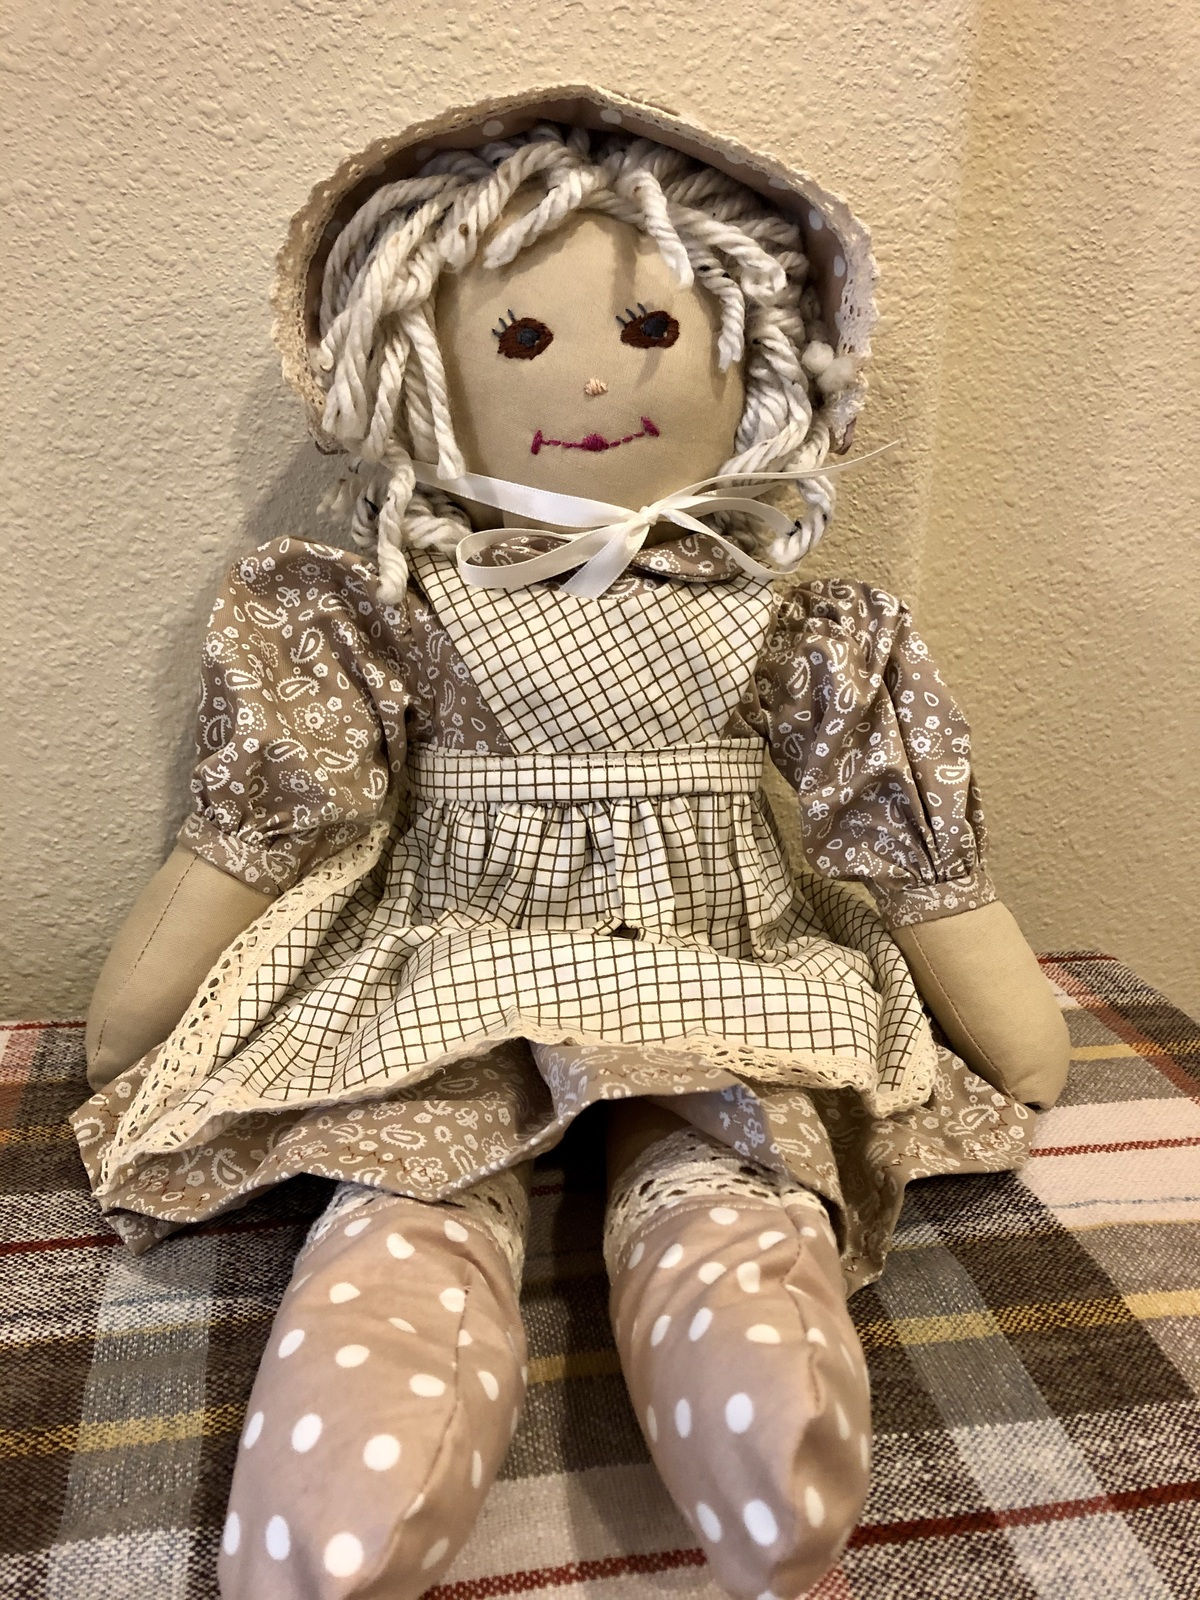 "Primary image for Handmade Cloth Rag Doll Soft Cuddly Handcrafted Stuffed 18"" Doll"